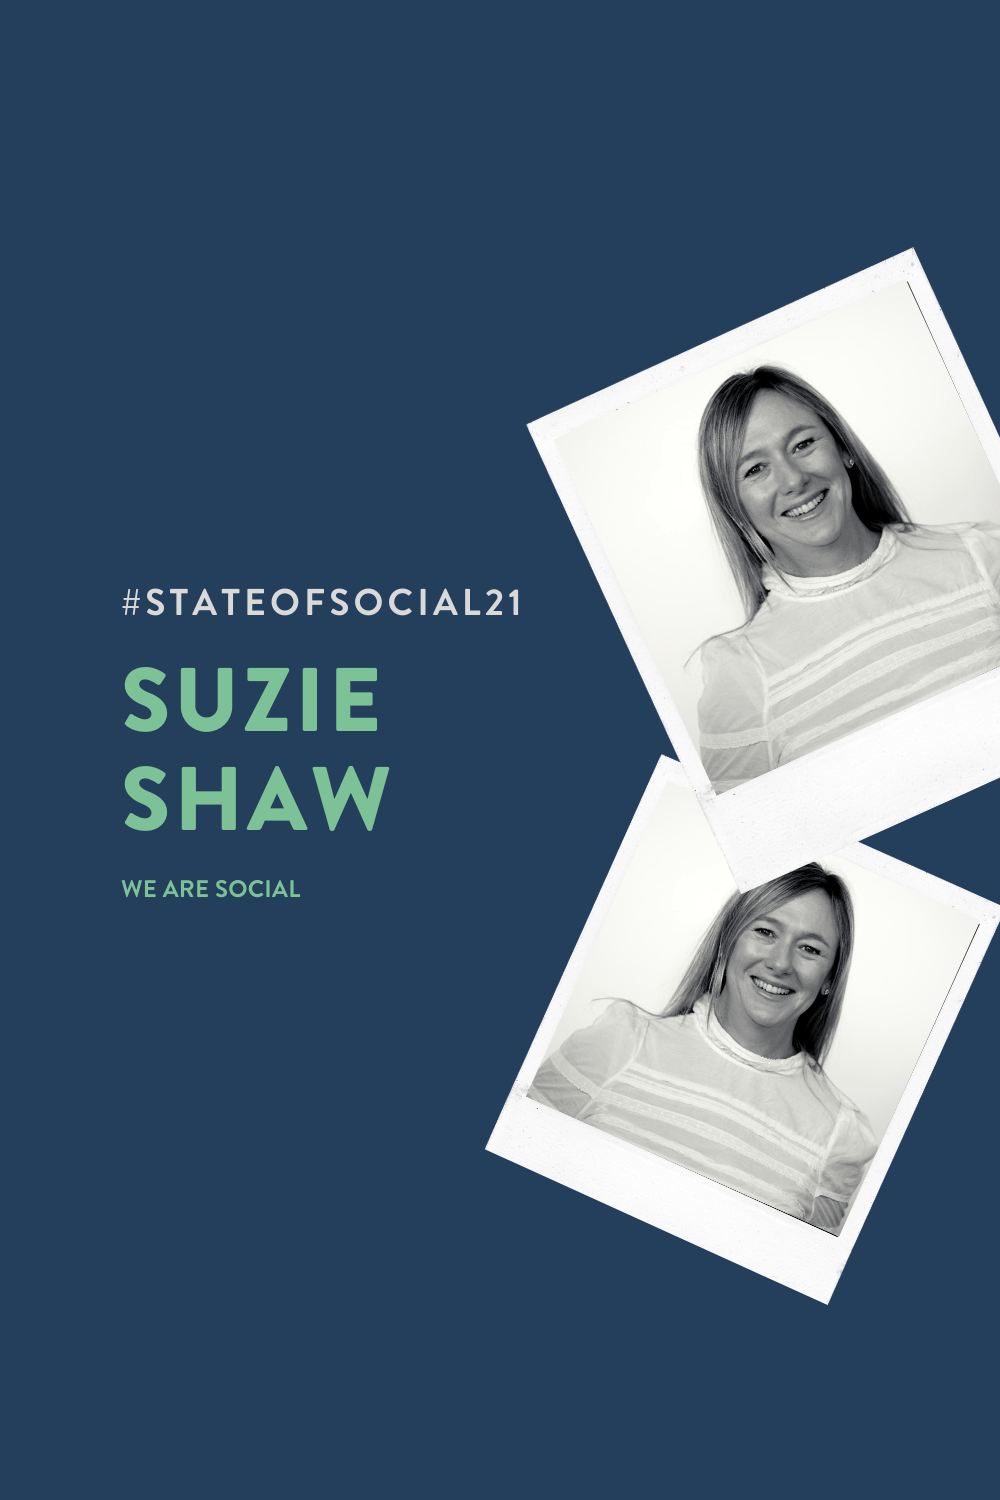 Ride the next big social wave with Suzie Shaw